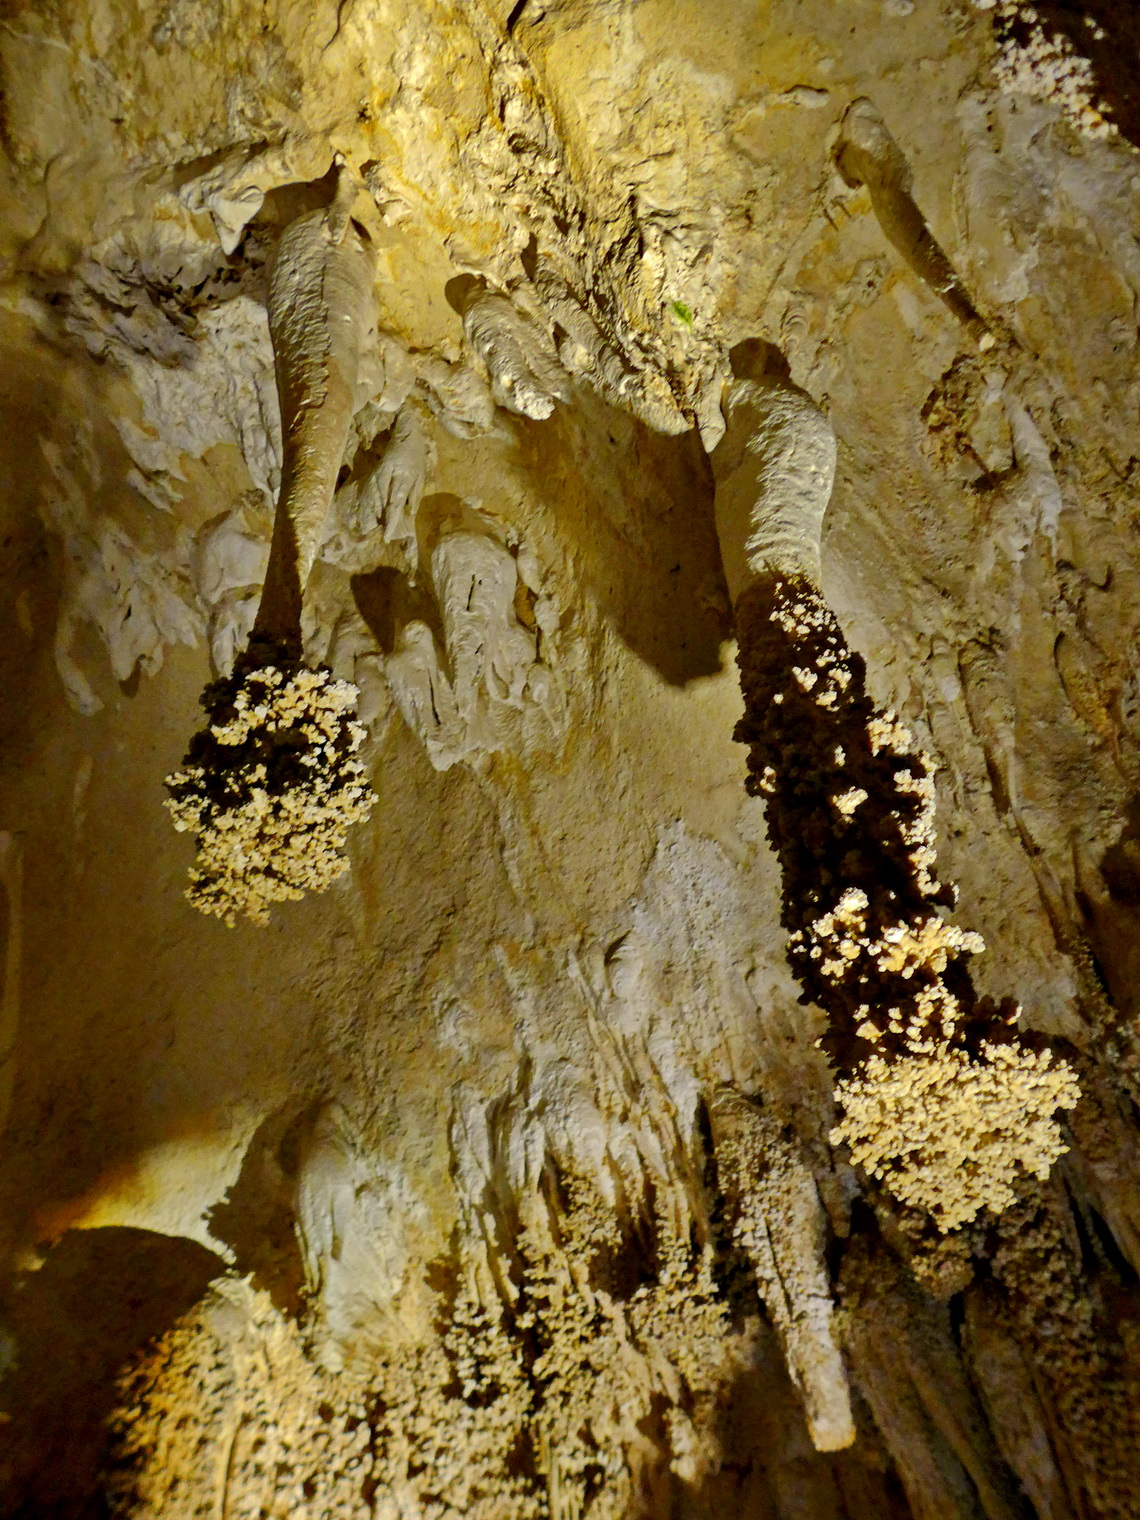 Lions Tails in the main cave